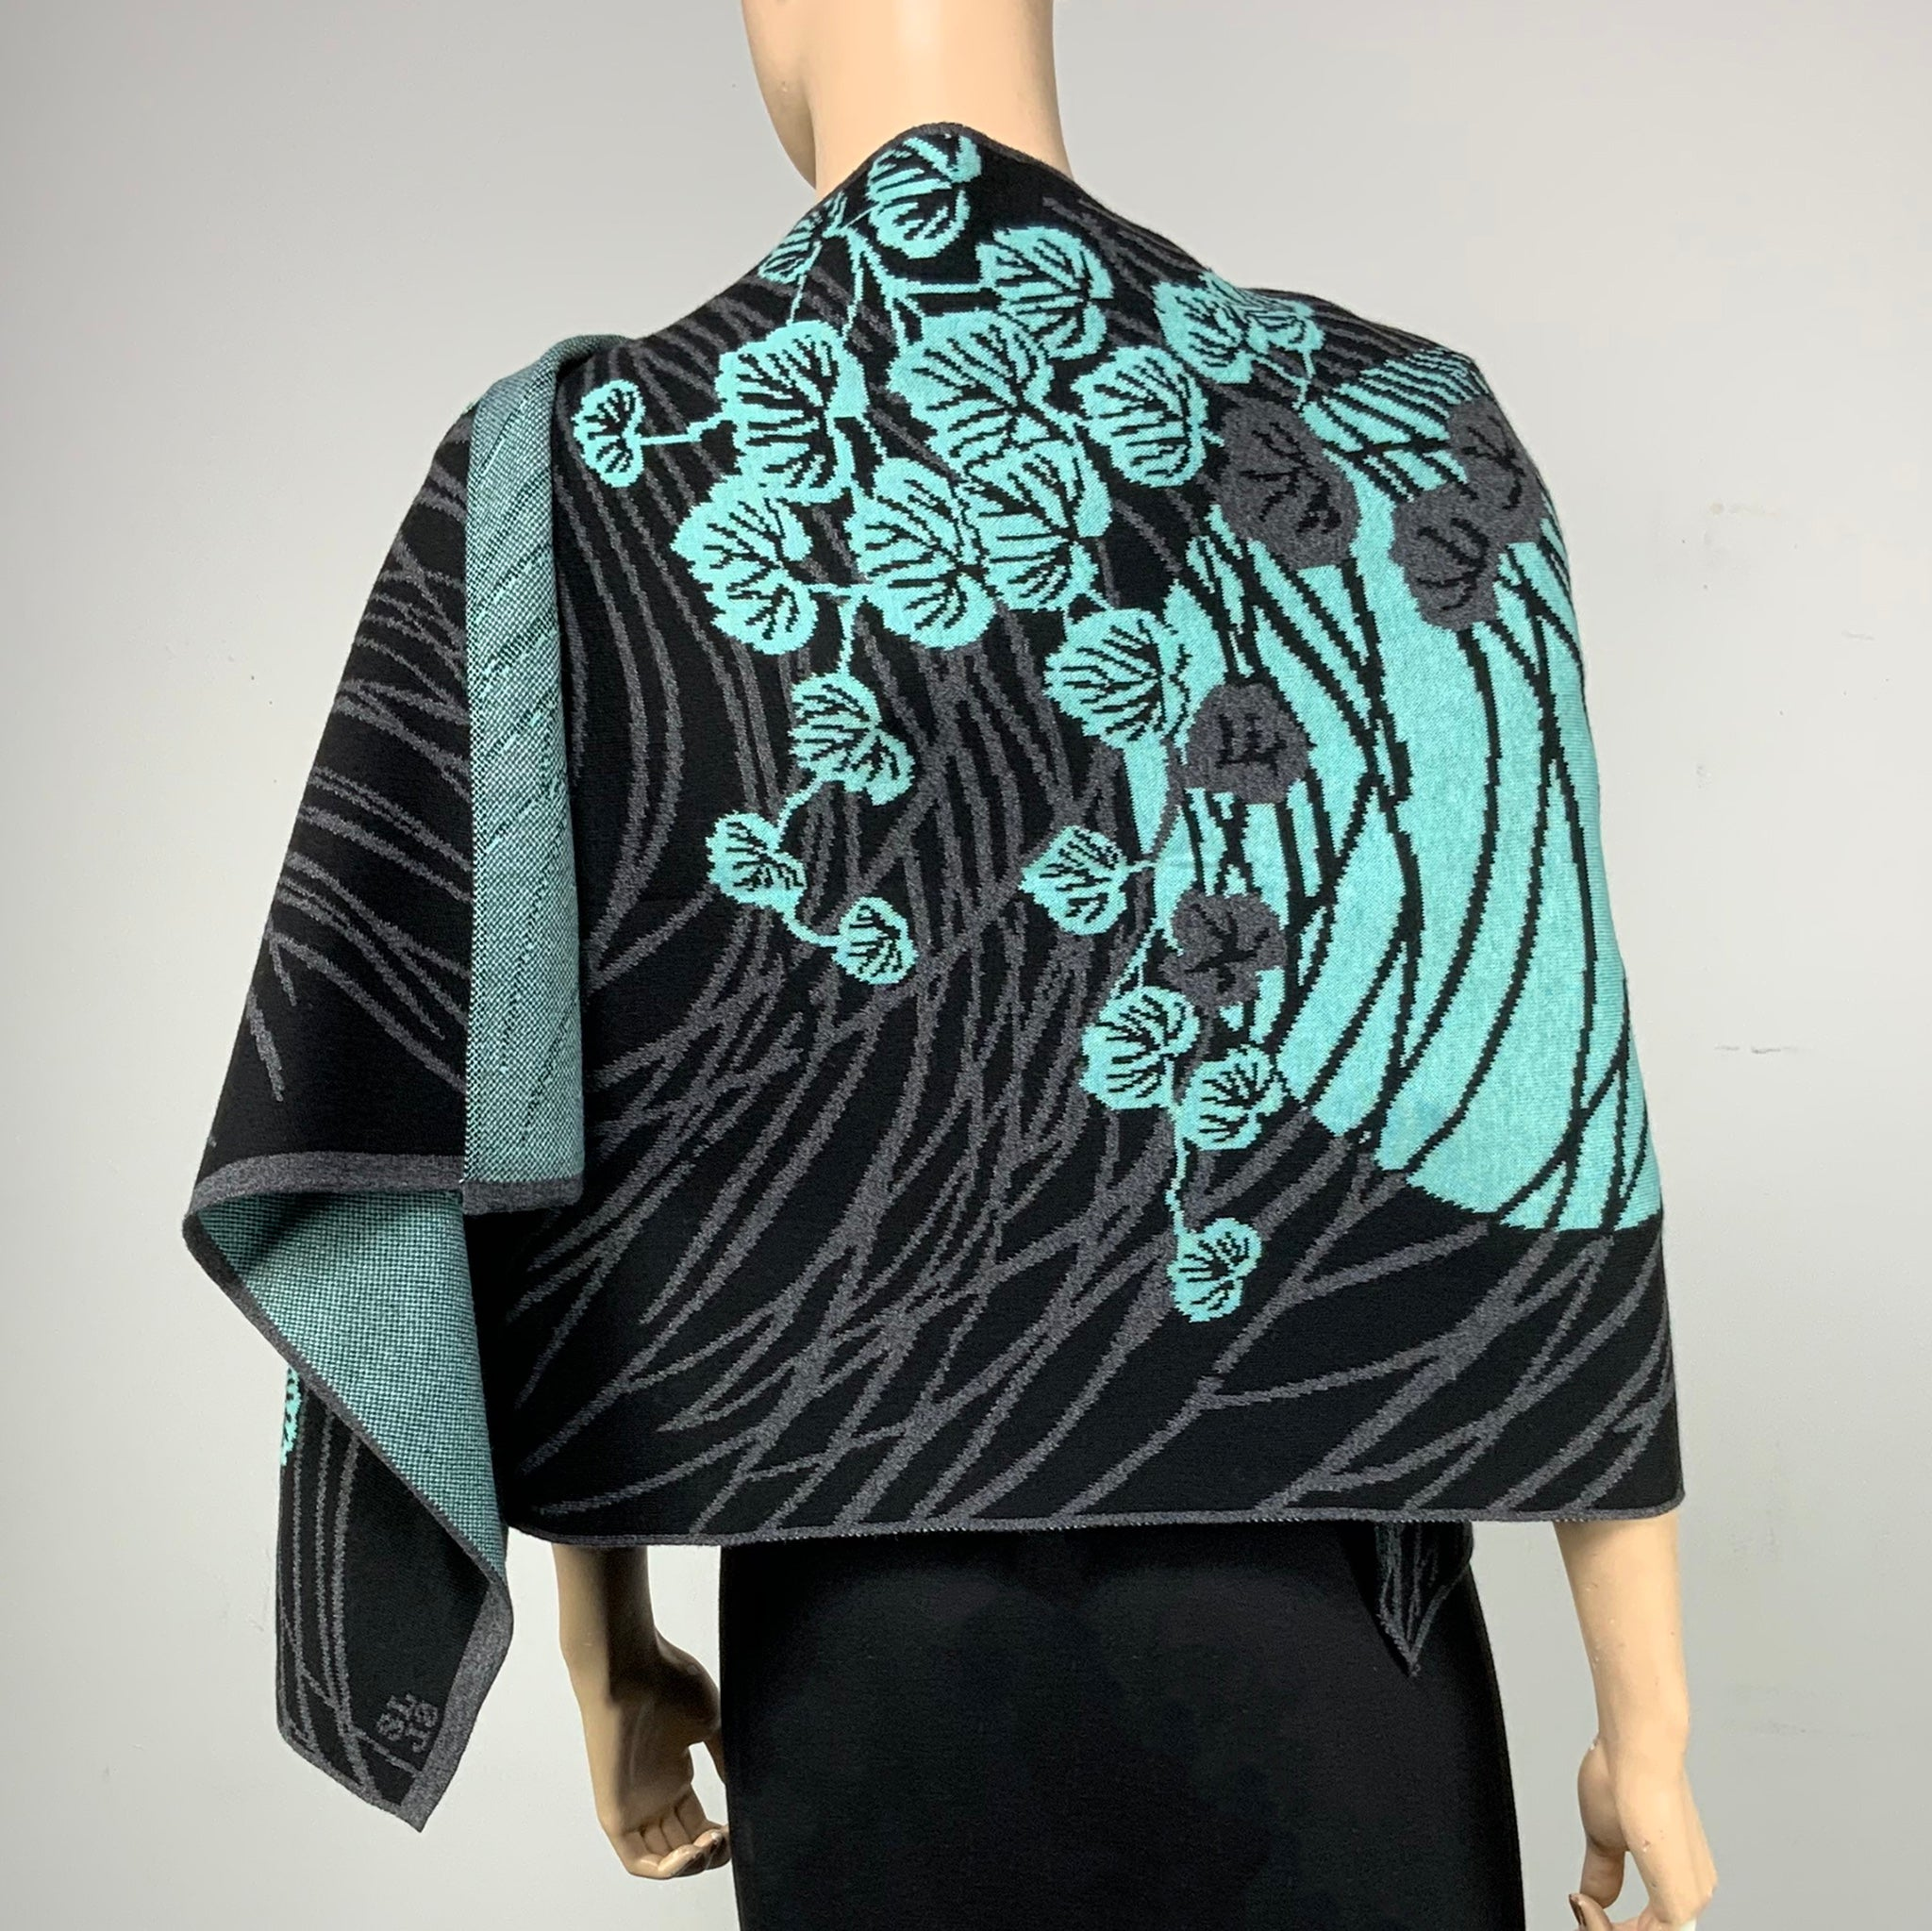 Moonscape Shawl Scarf Wrap Black, Grey, Mint